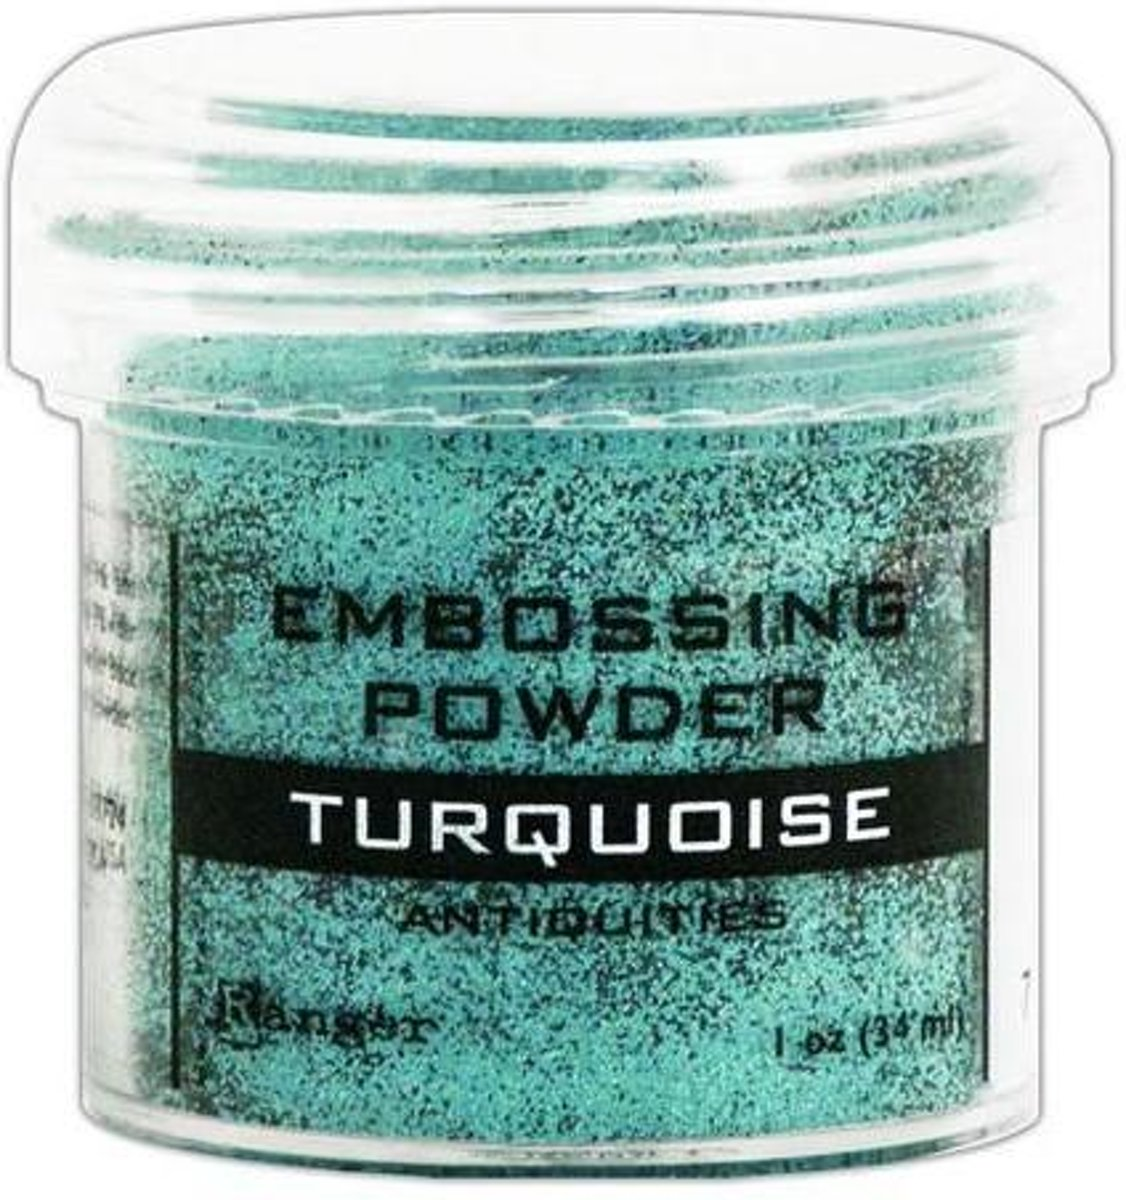 Ranger Embossing Powder 34ml - turquoise